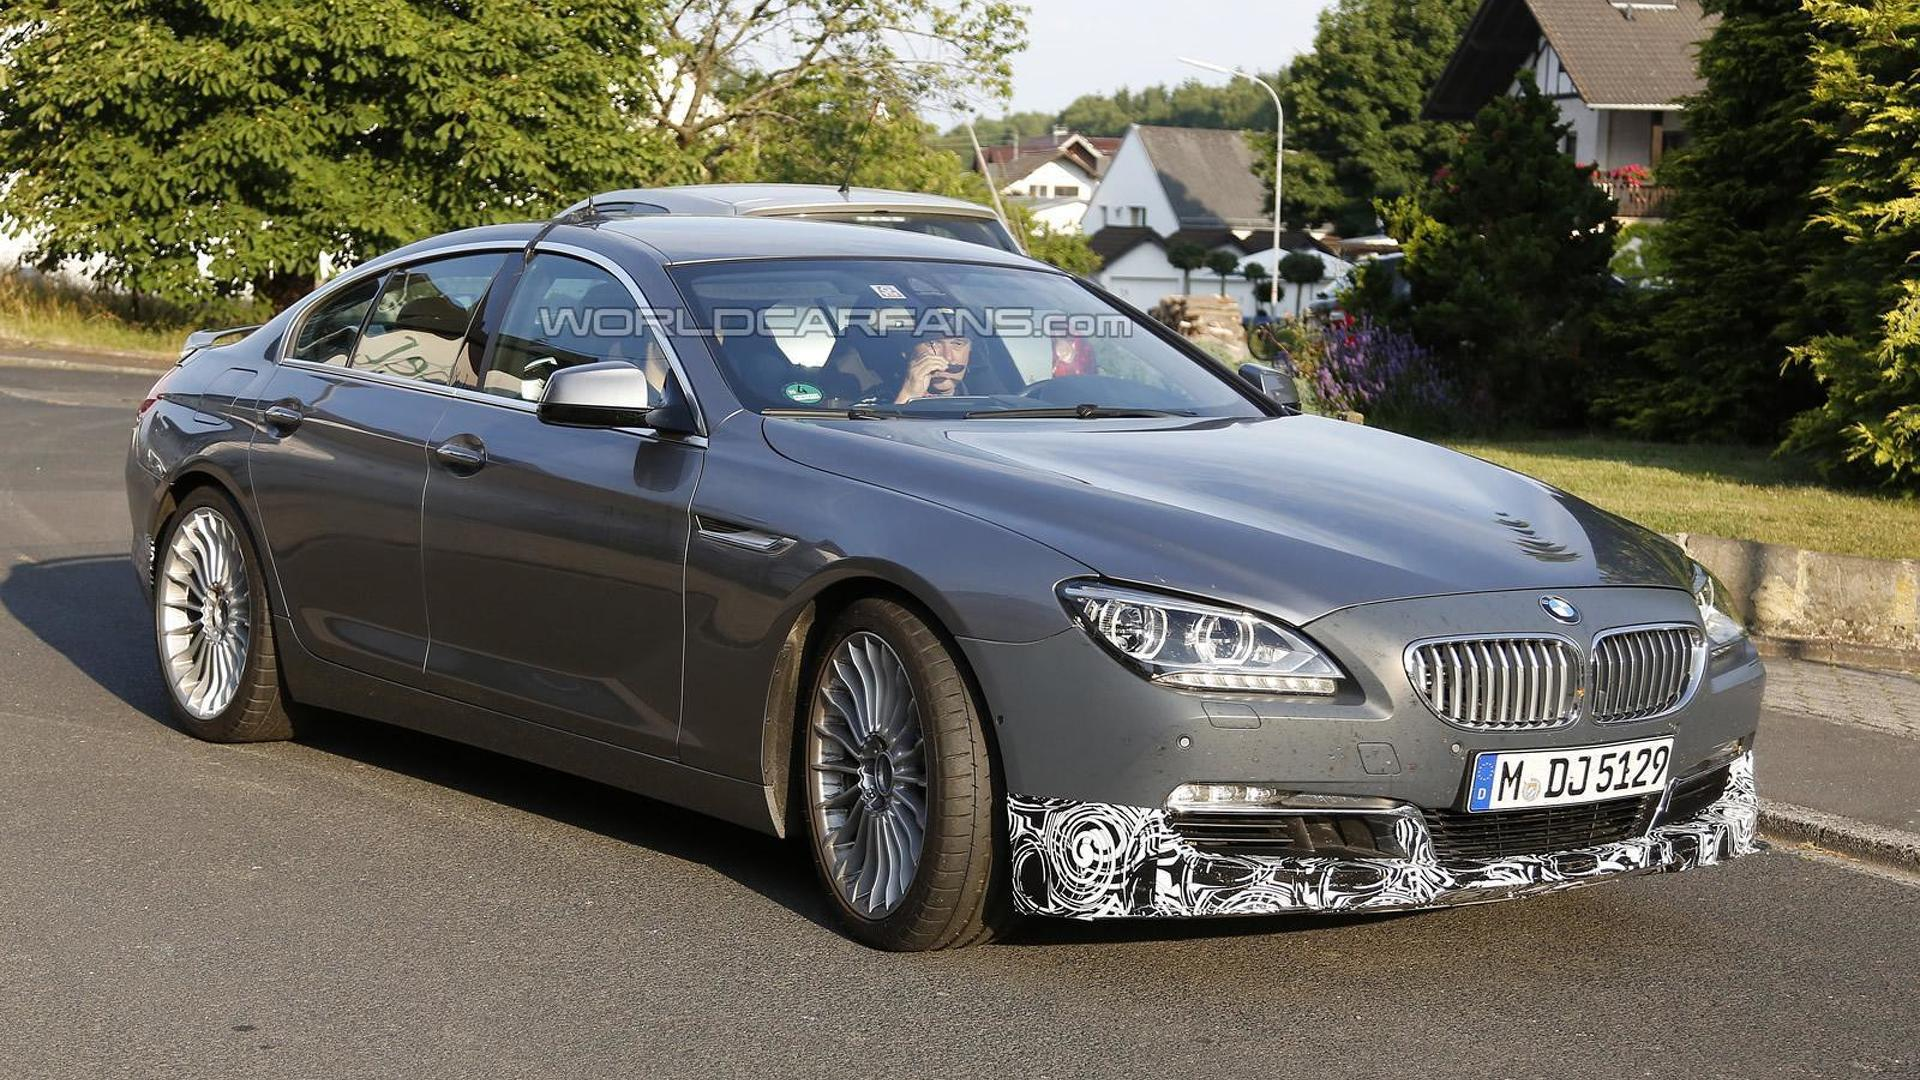 Alpina 6-Series Gran Coupe spied testing